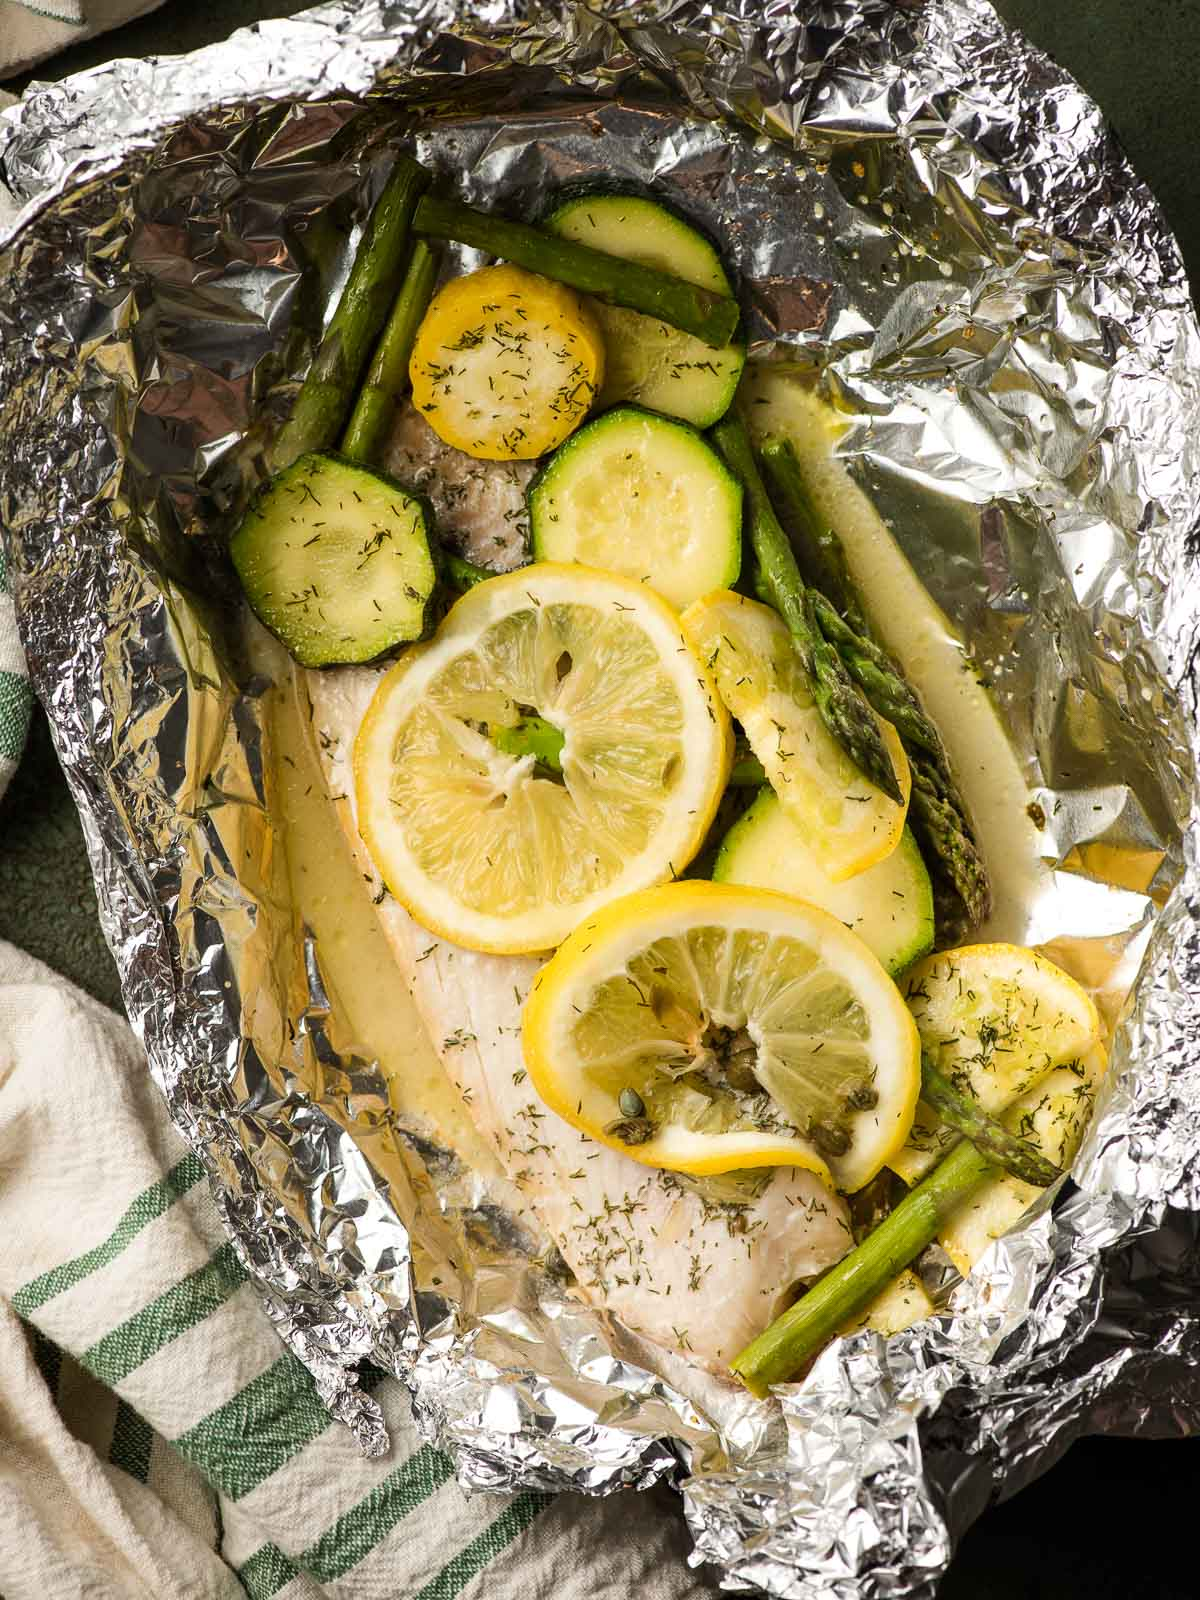 Tilapia fillet topped with lemon slices and surrounded by sliced squash and asparagus in a foil packet.